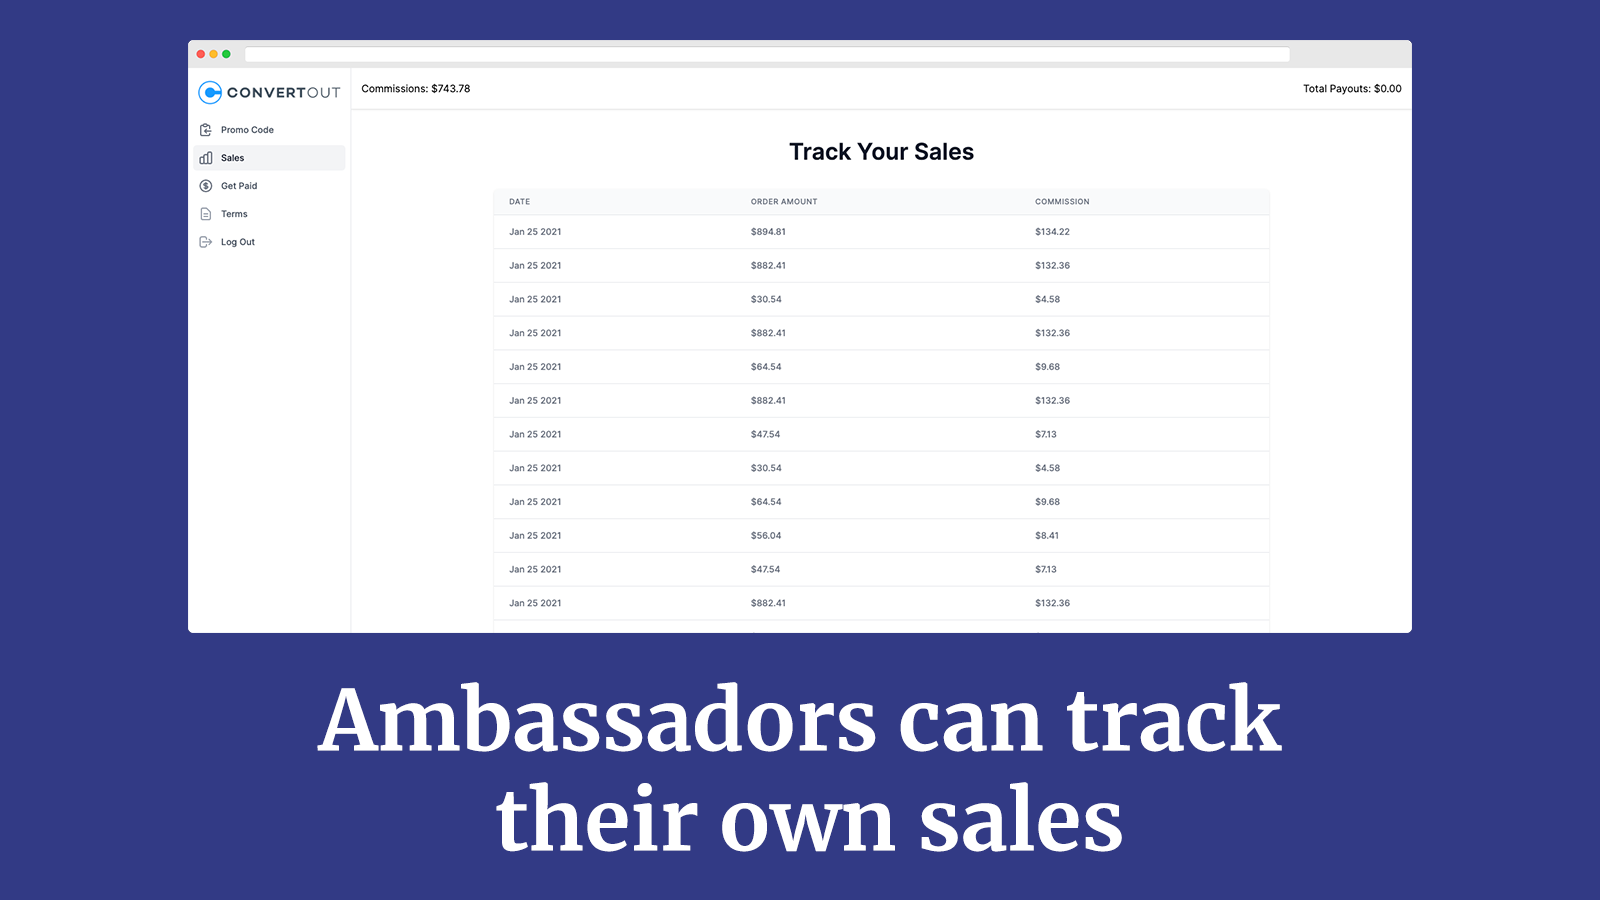 Ambassadors can track their own sales